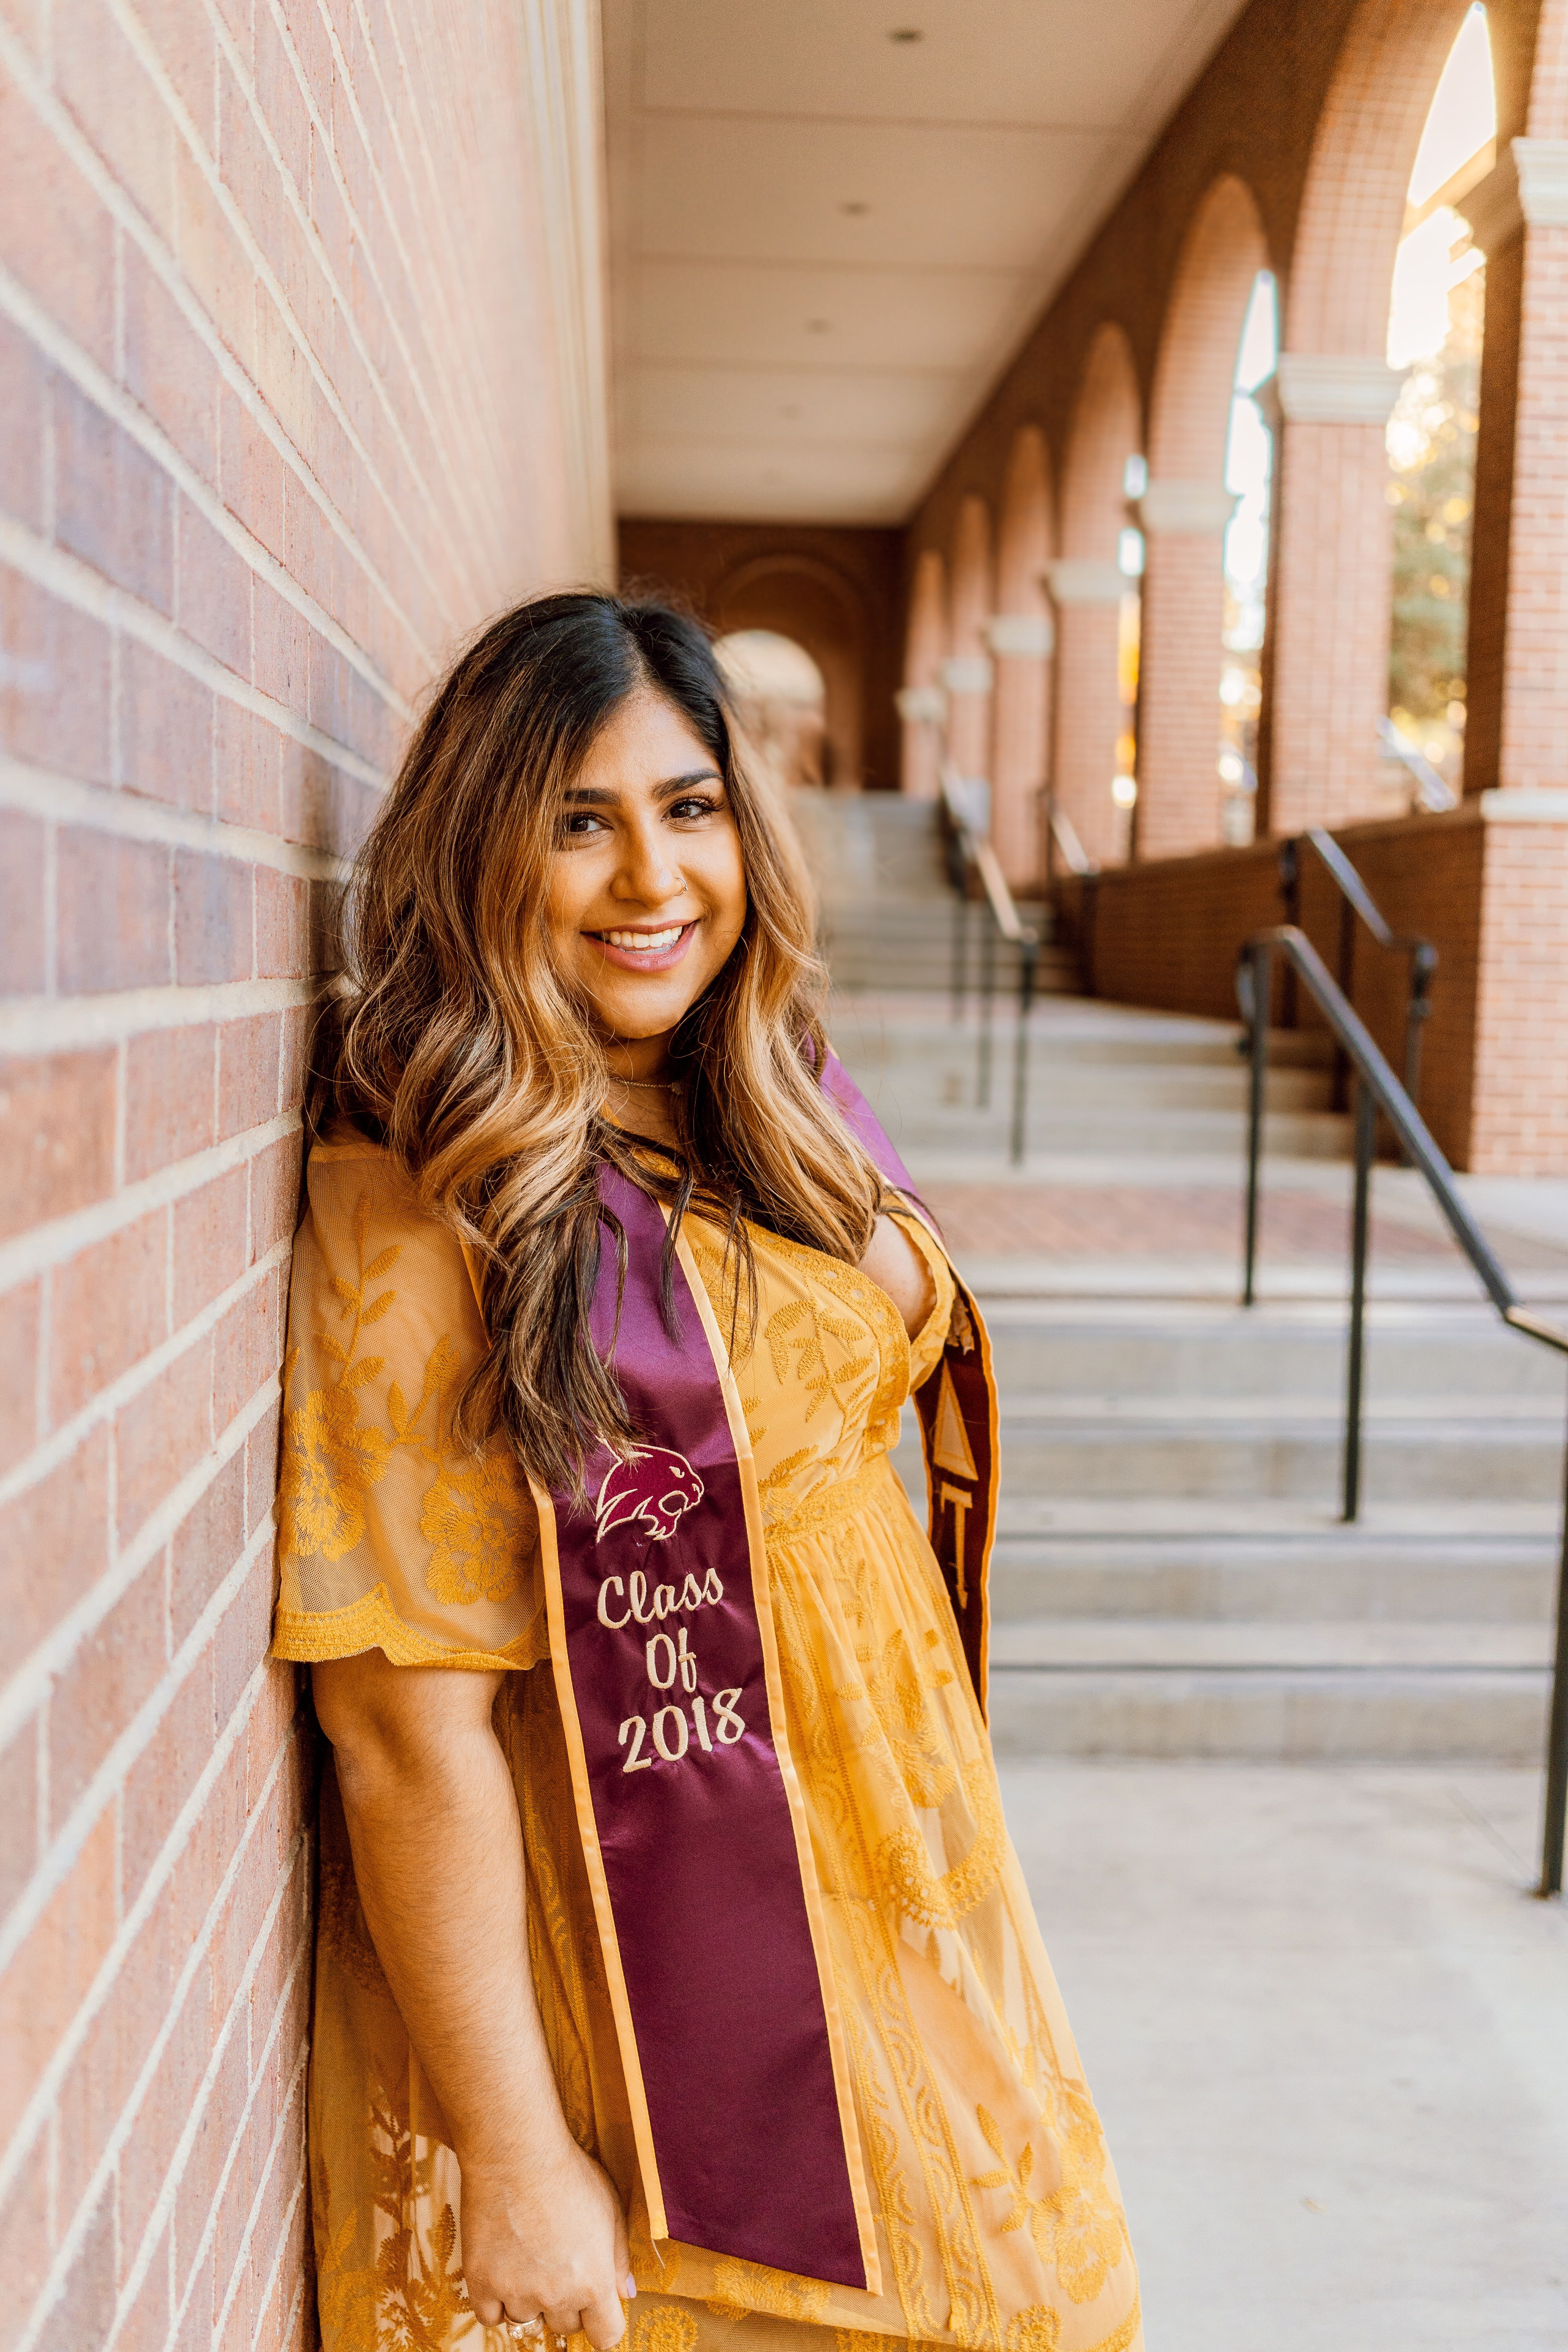 Texas State University Grad In 2020 With Images University